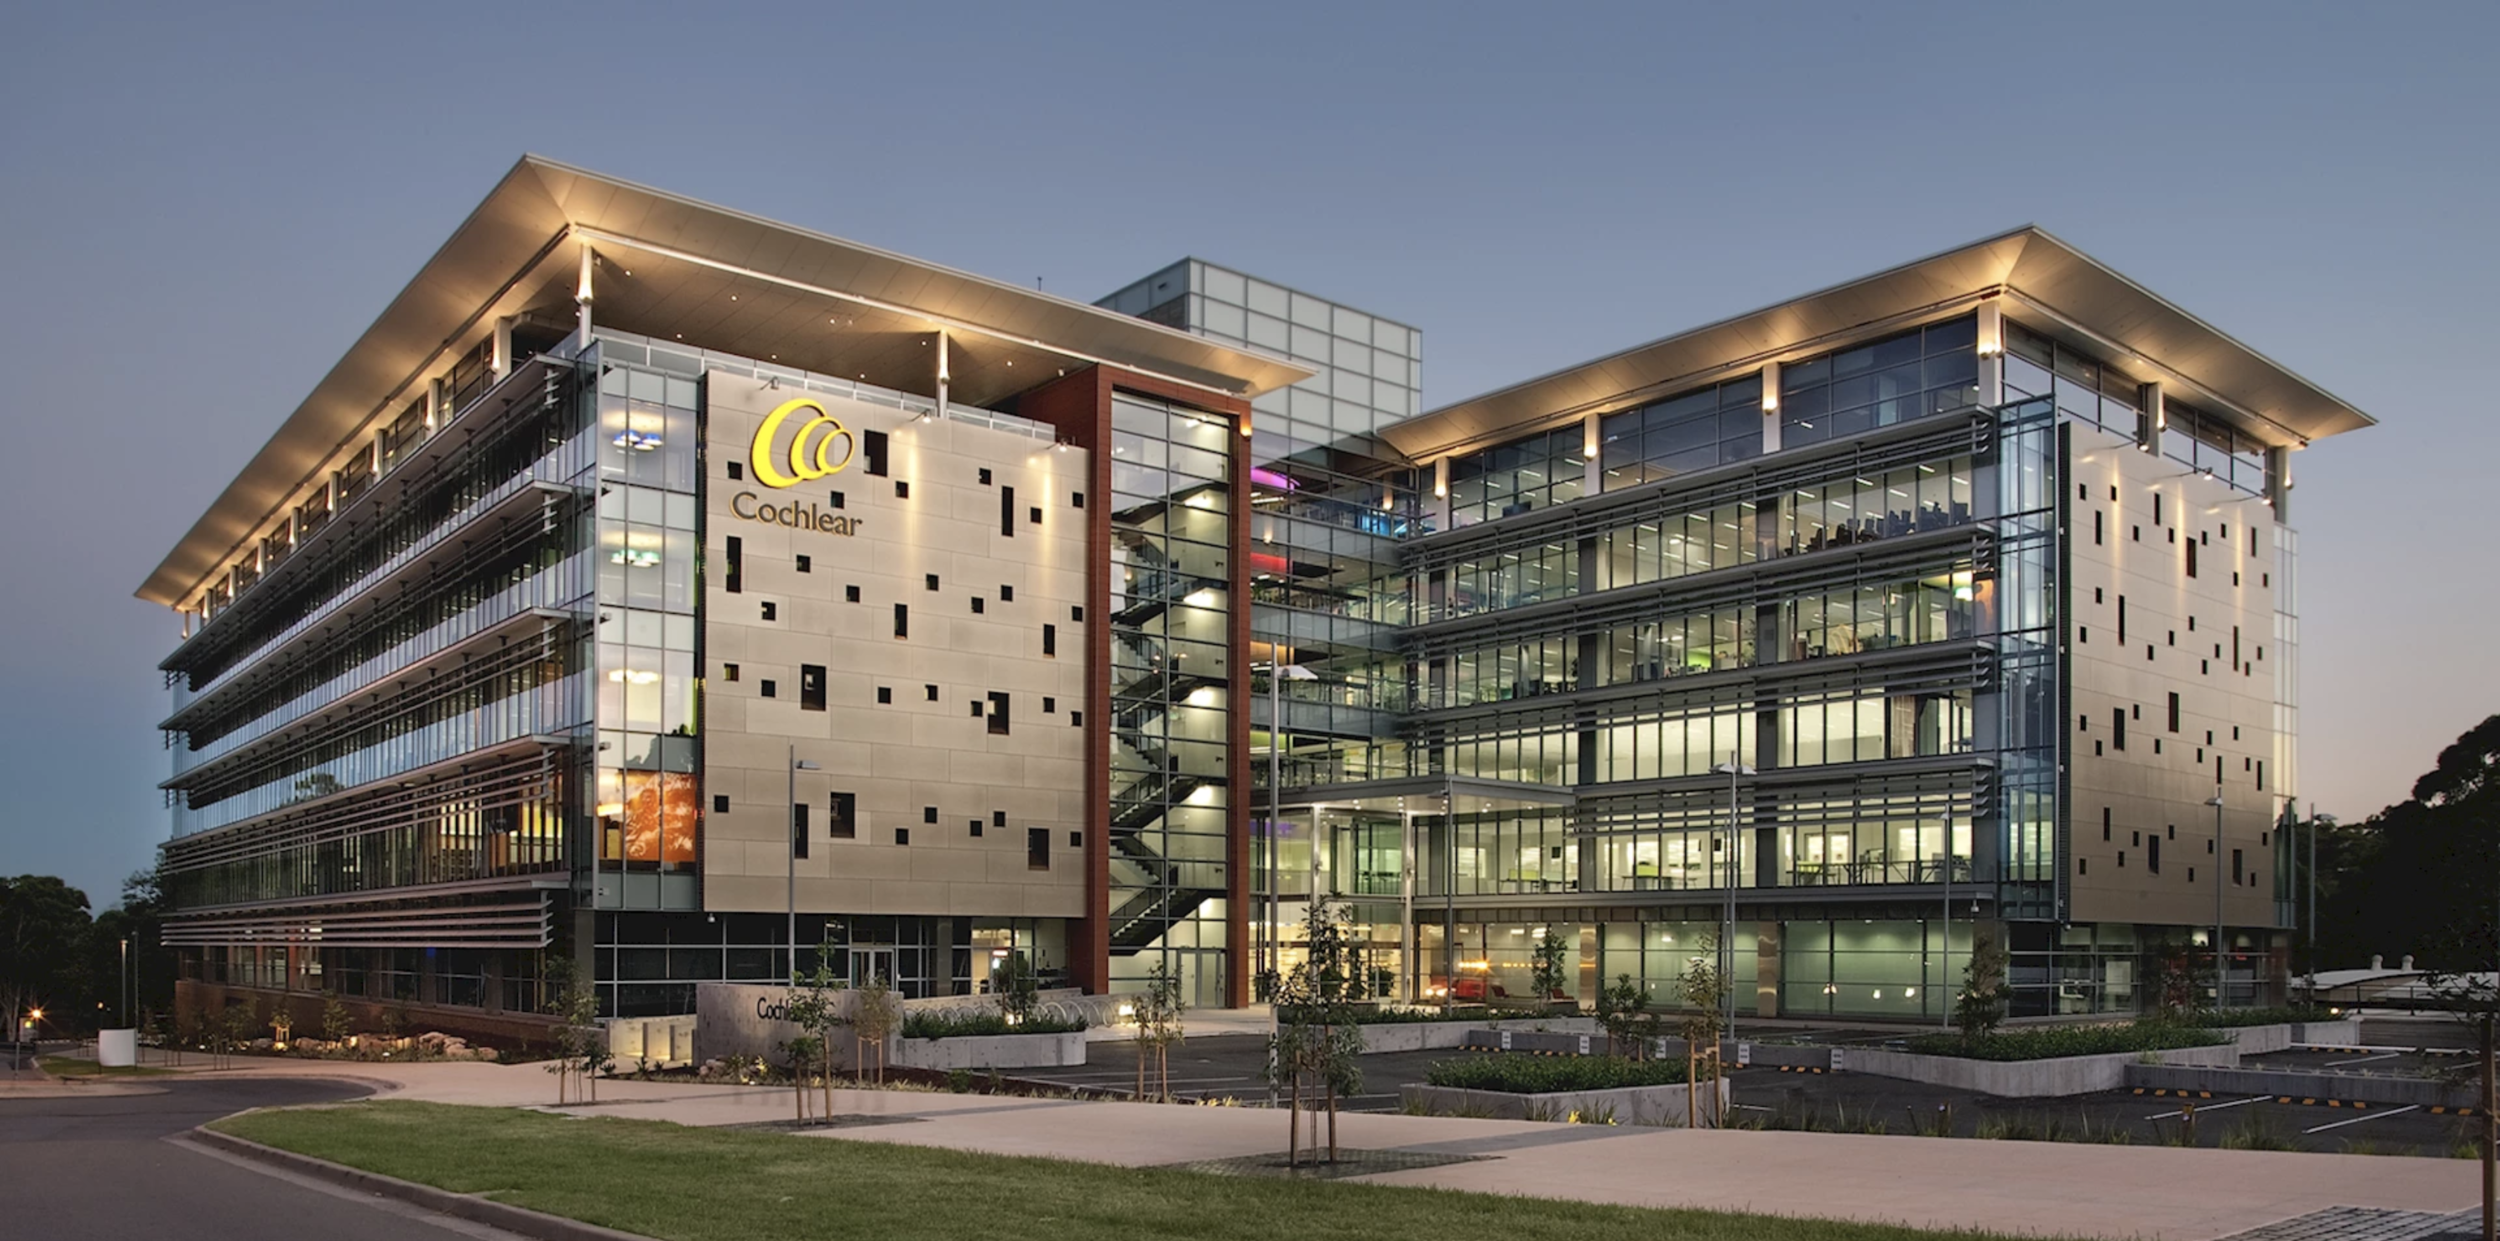 Cochlear_Building.png